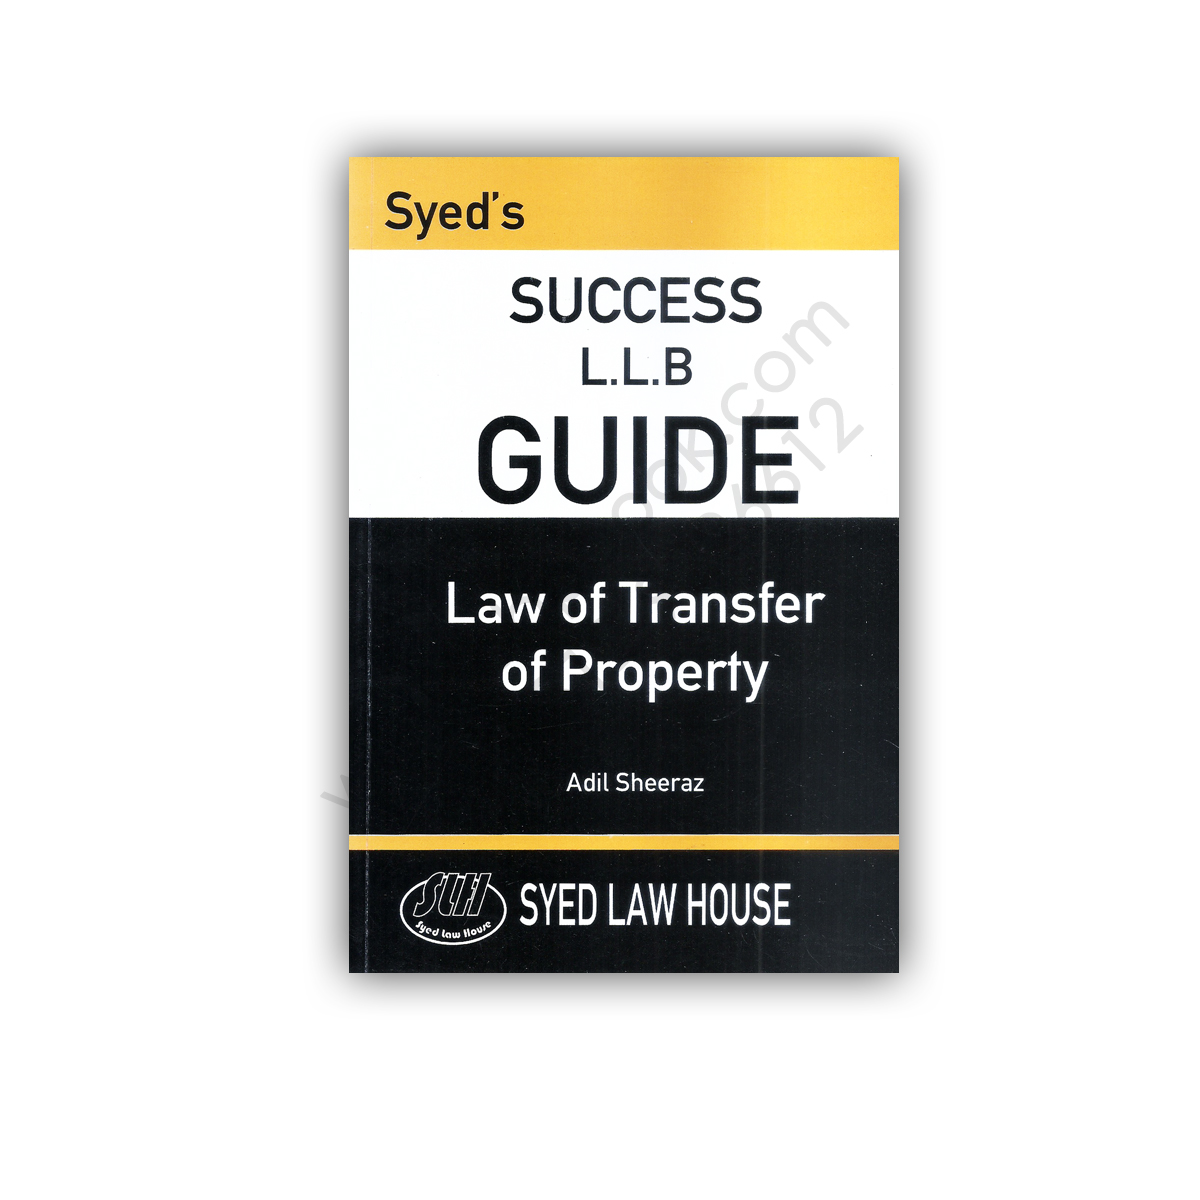 syeds success llb guide law of transfer of property adil sheeraz